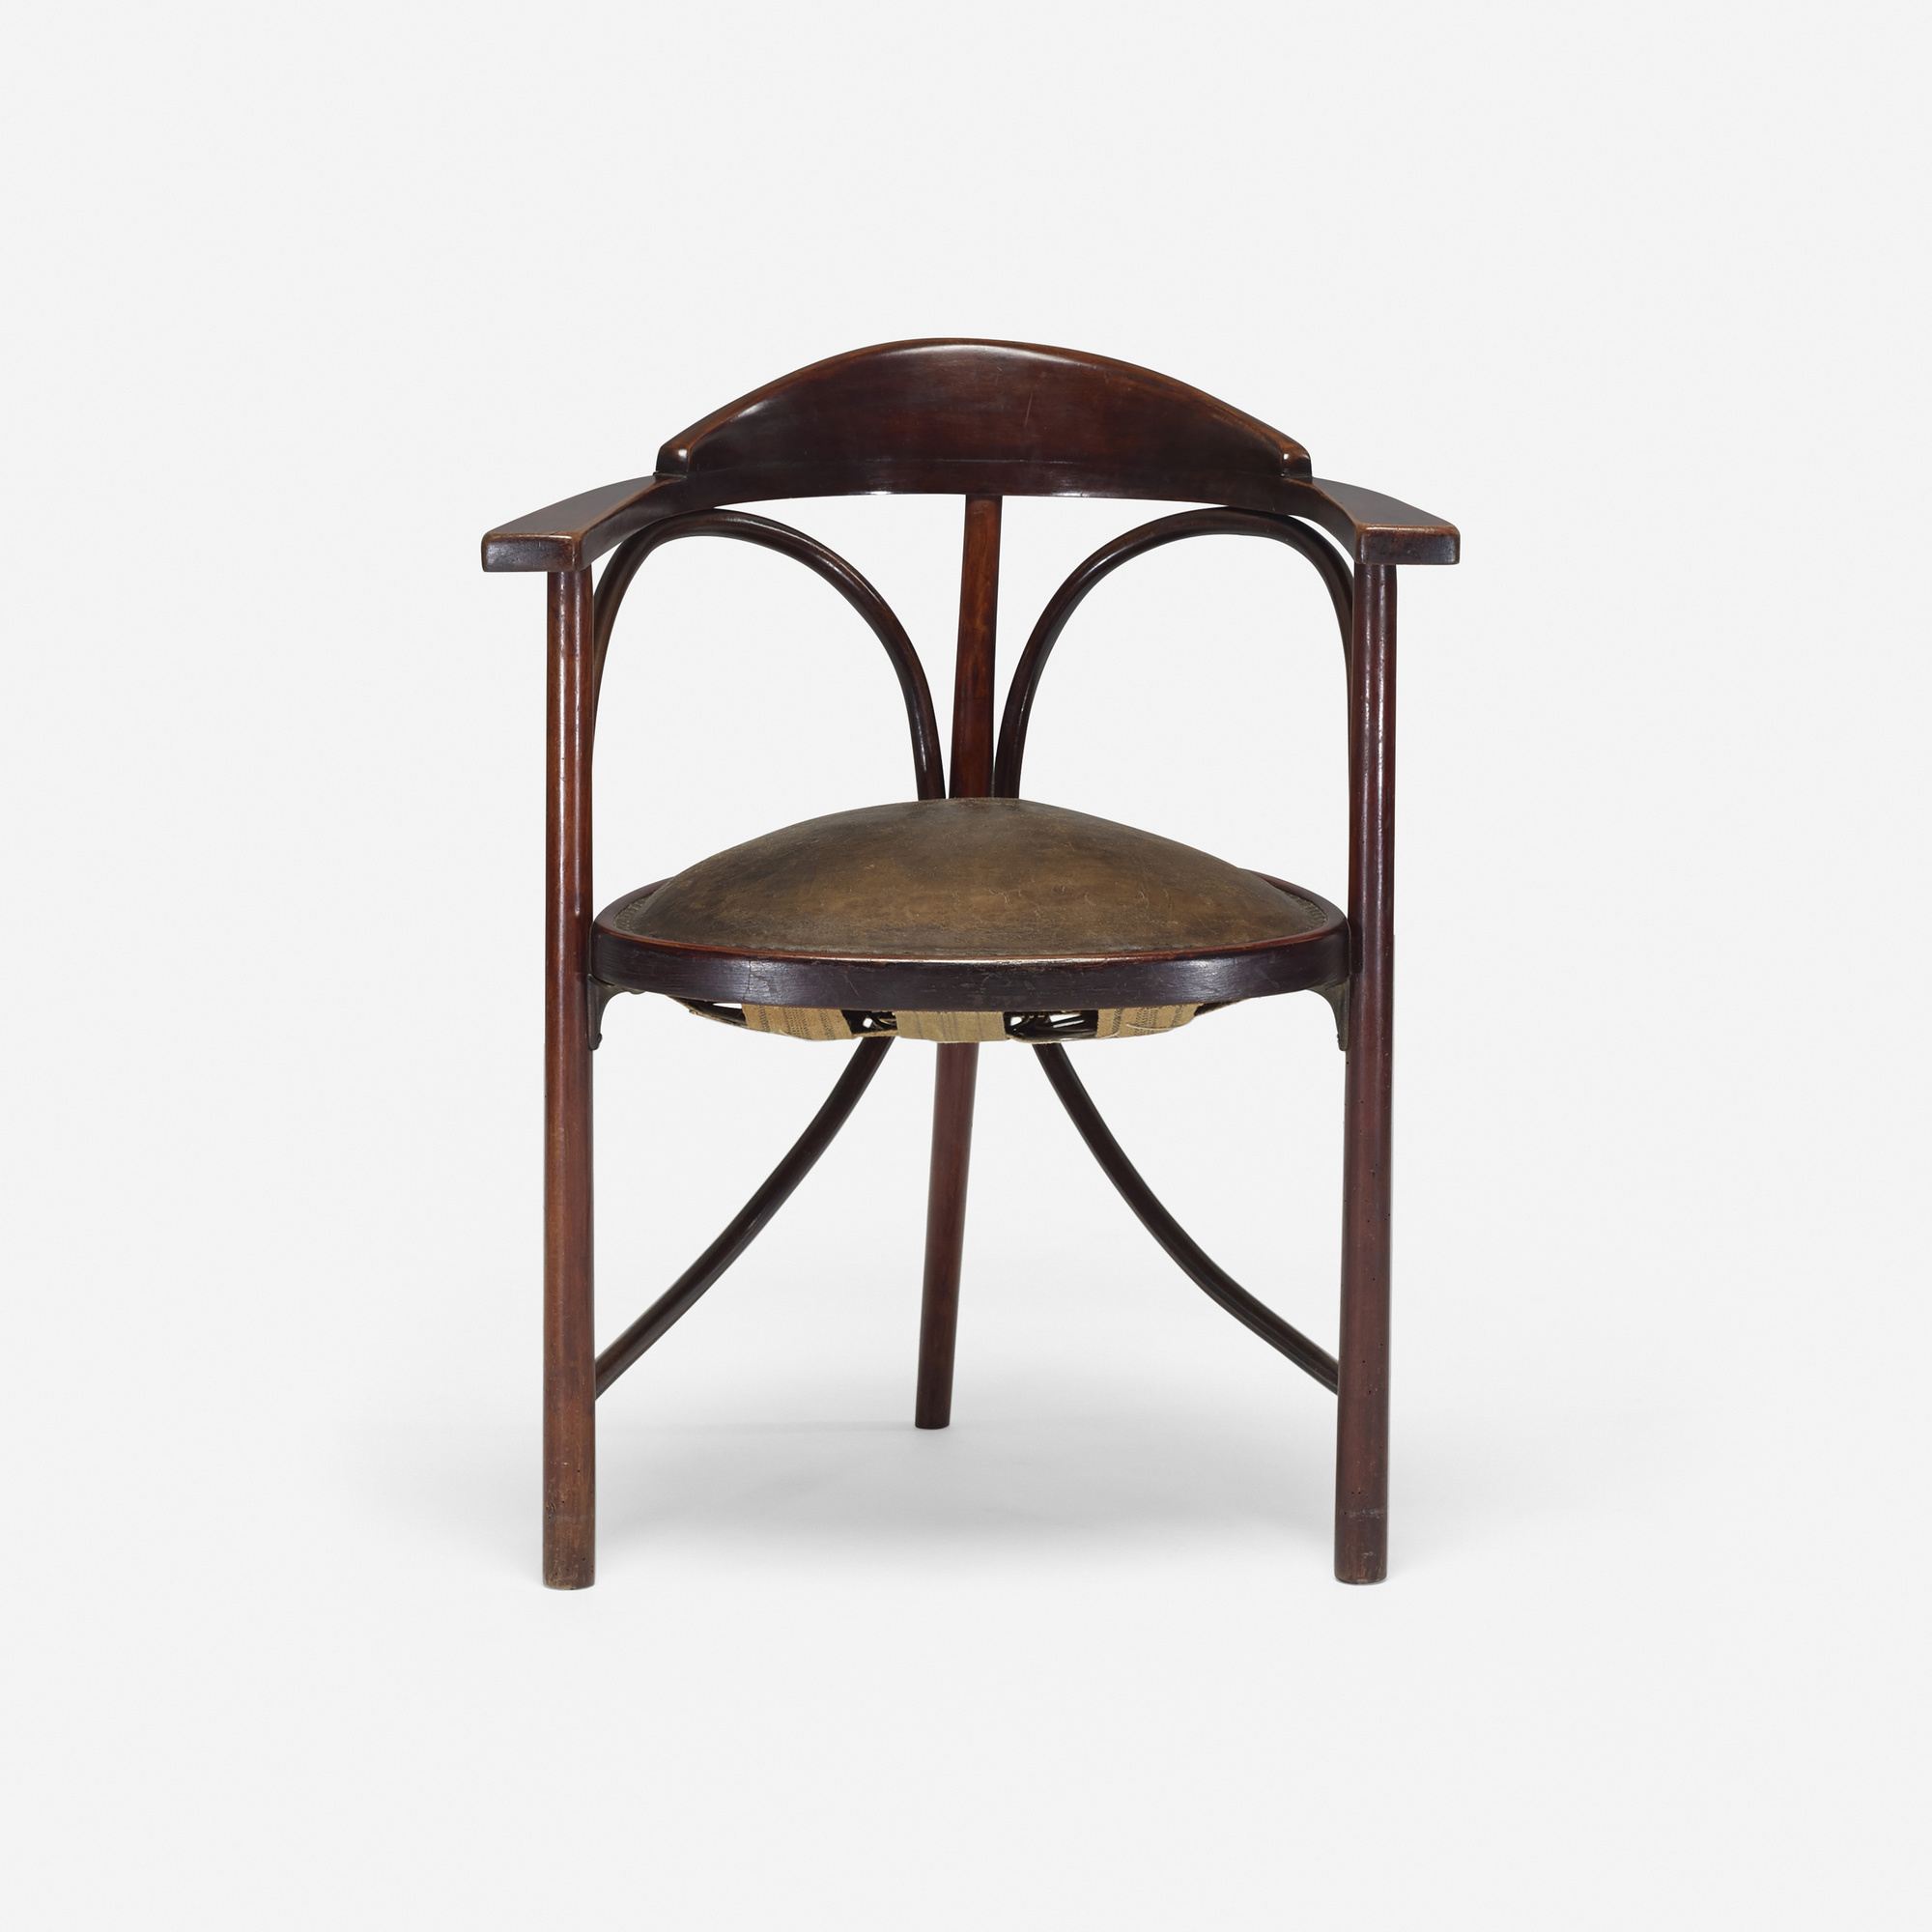 Charmant ... 256: Thonet / Three Legged Chair, Model No. 81 (2 Of